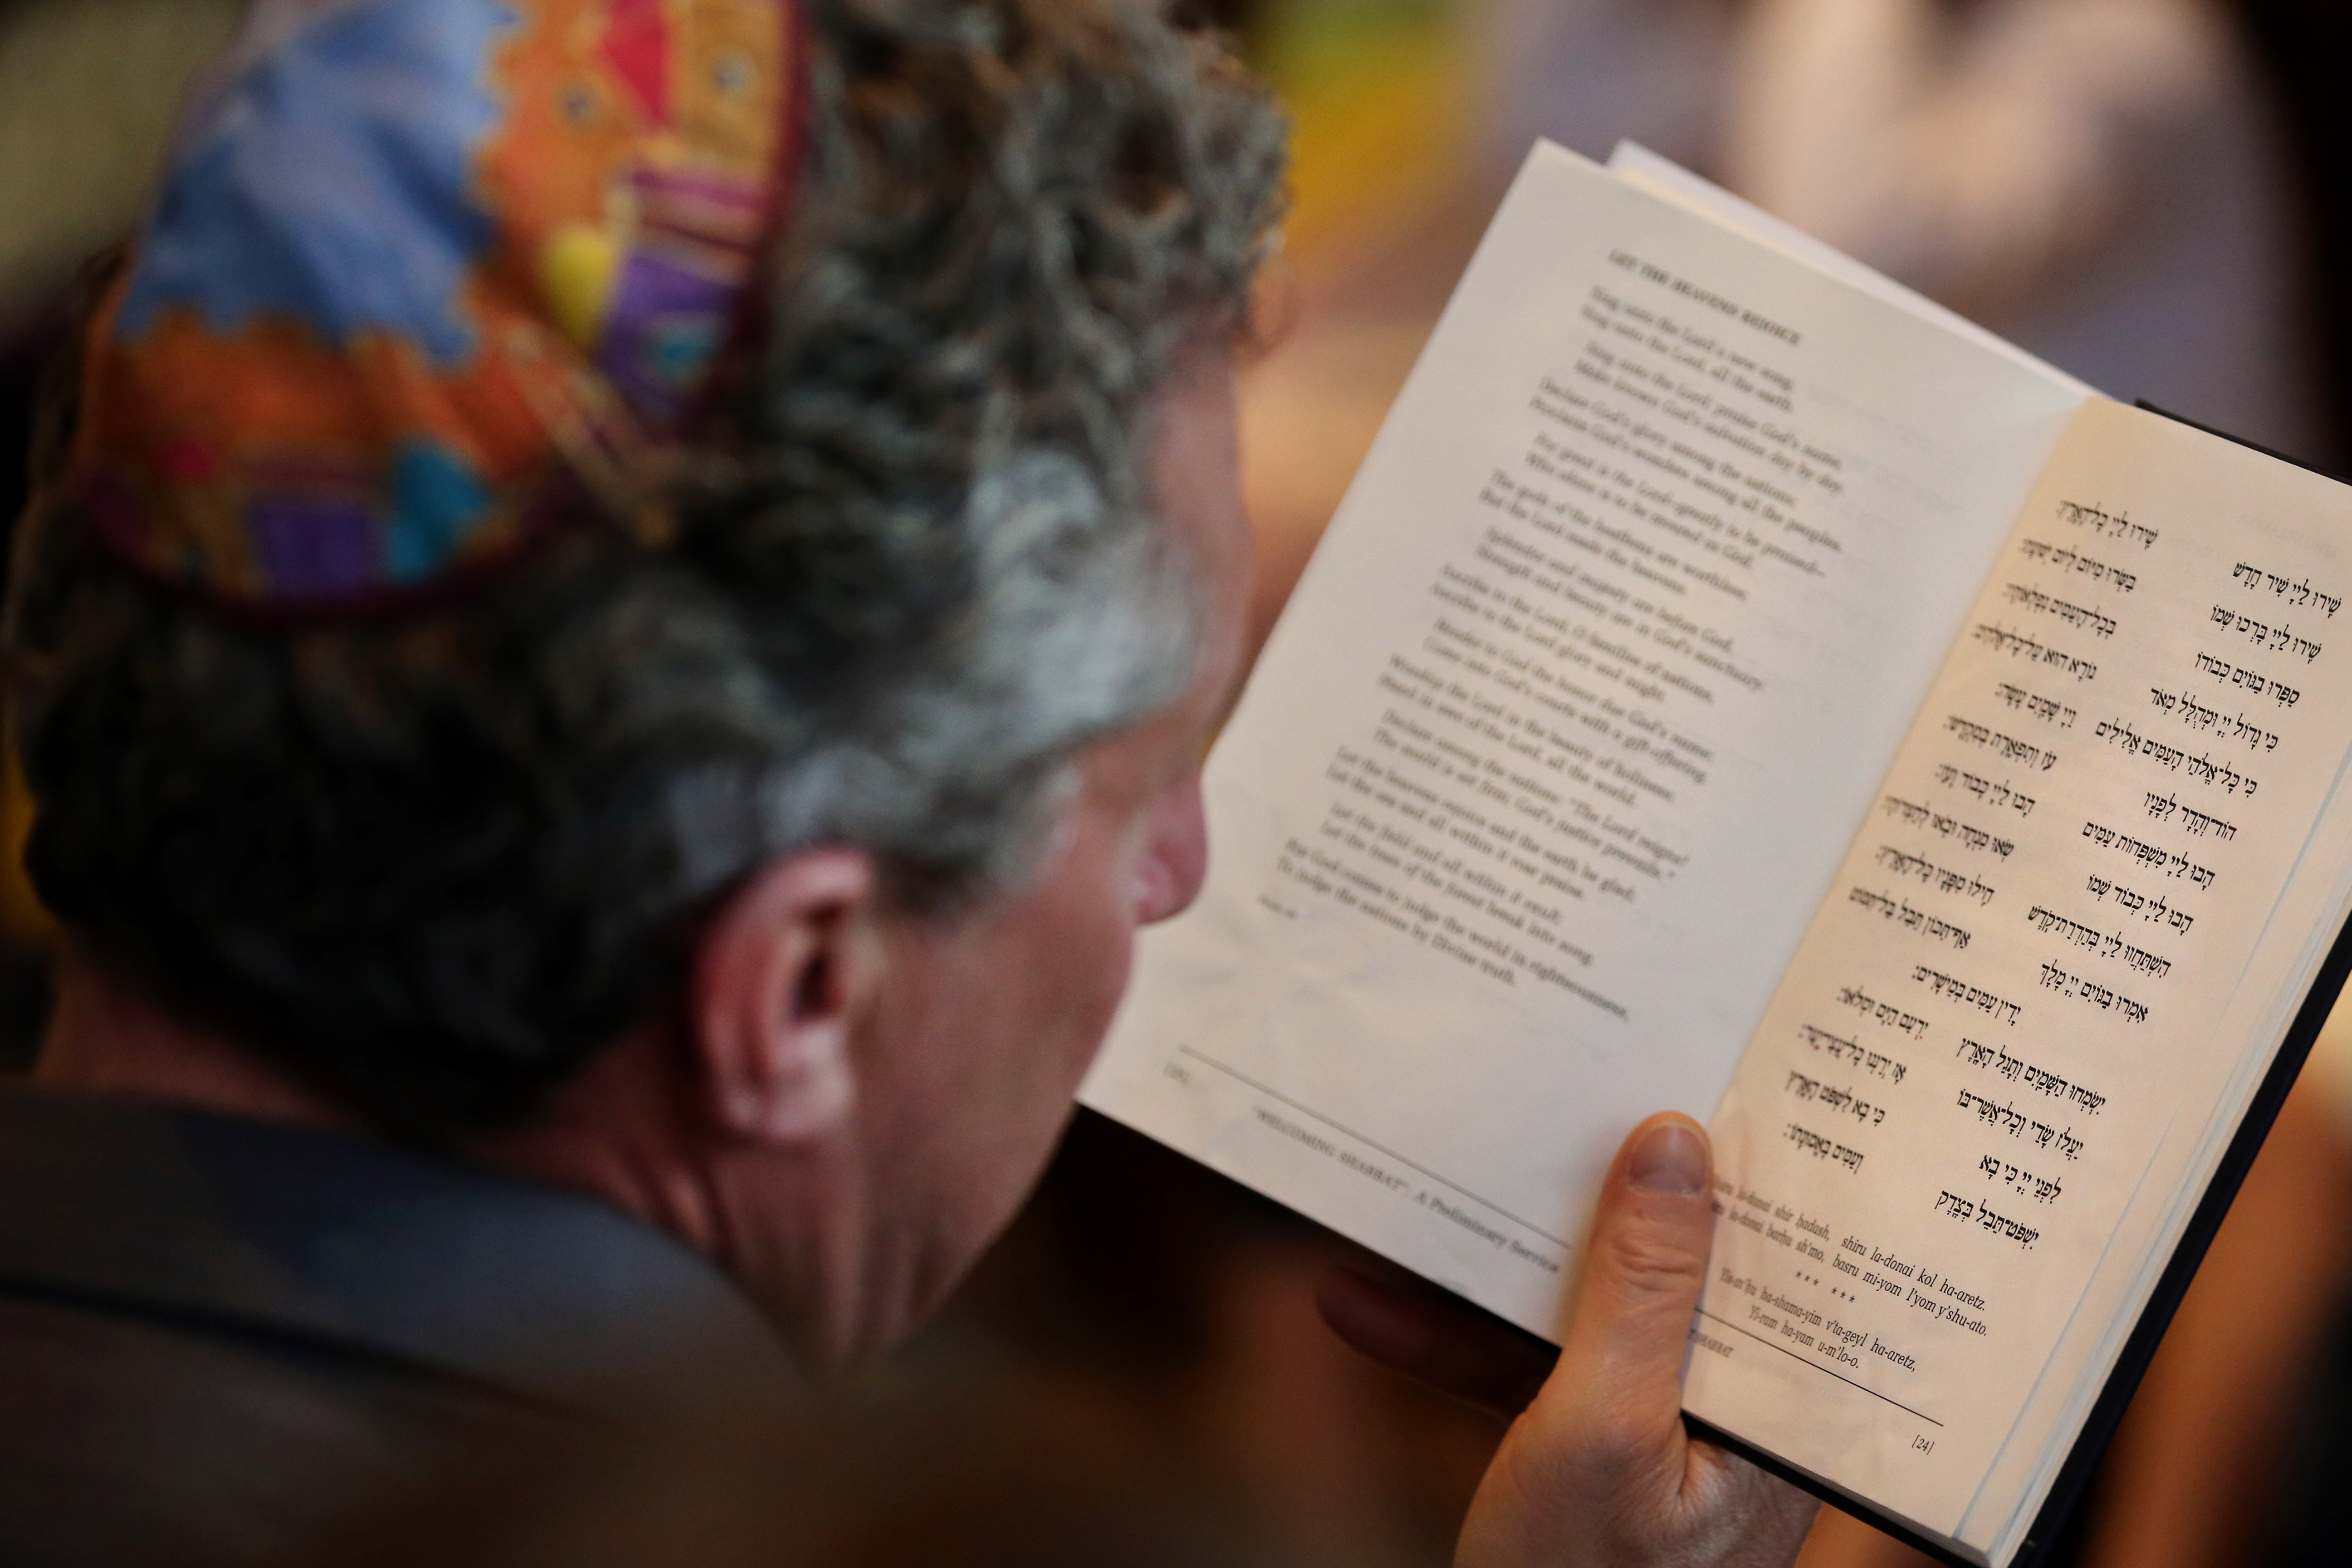 In Vt , a Jewish community rises like the mountains - The